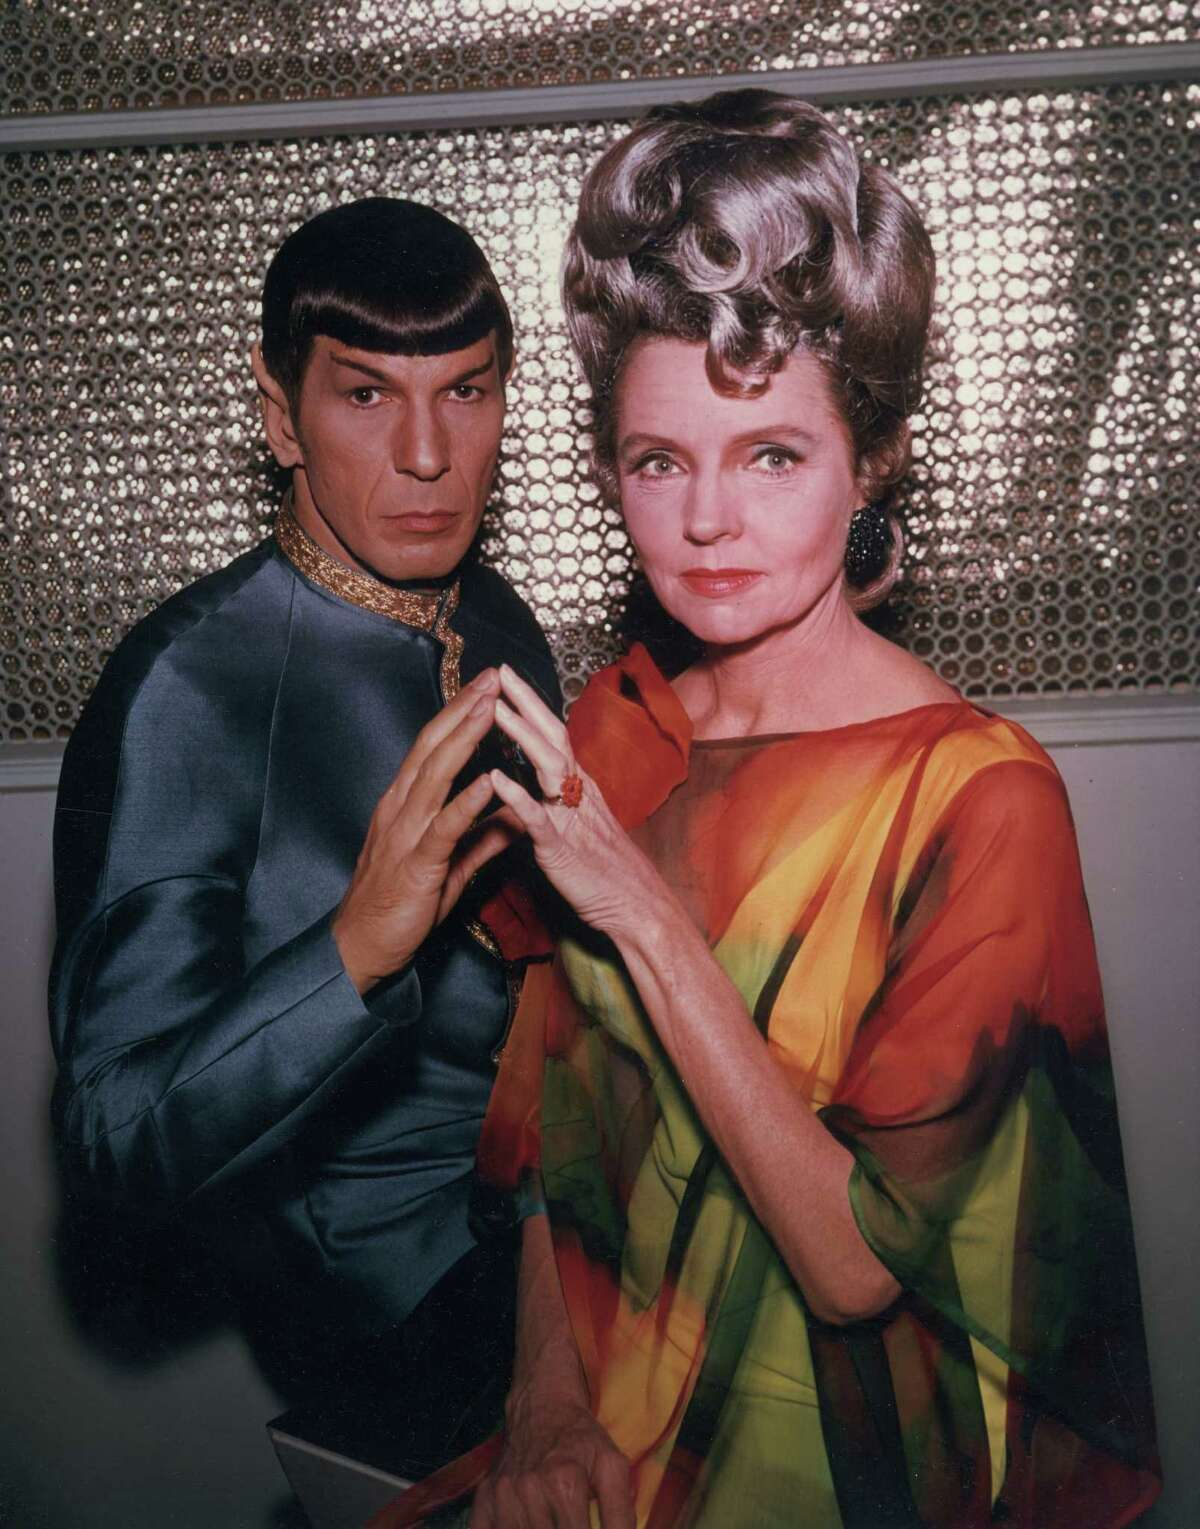 Not to be outdone by Shatner, Leonard Nimoy did a  highly illogical version of